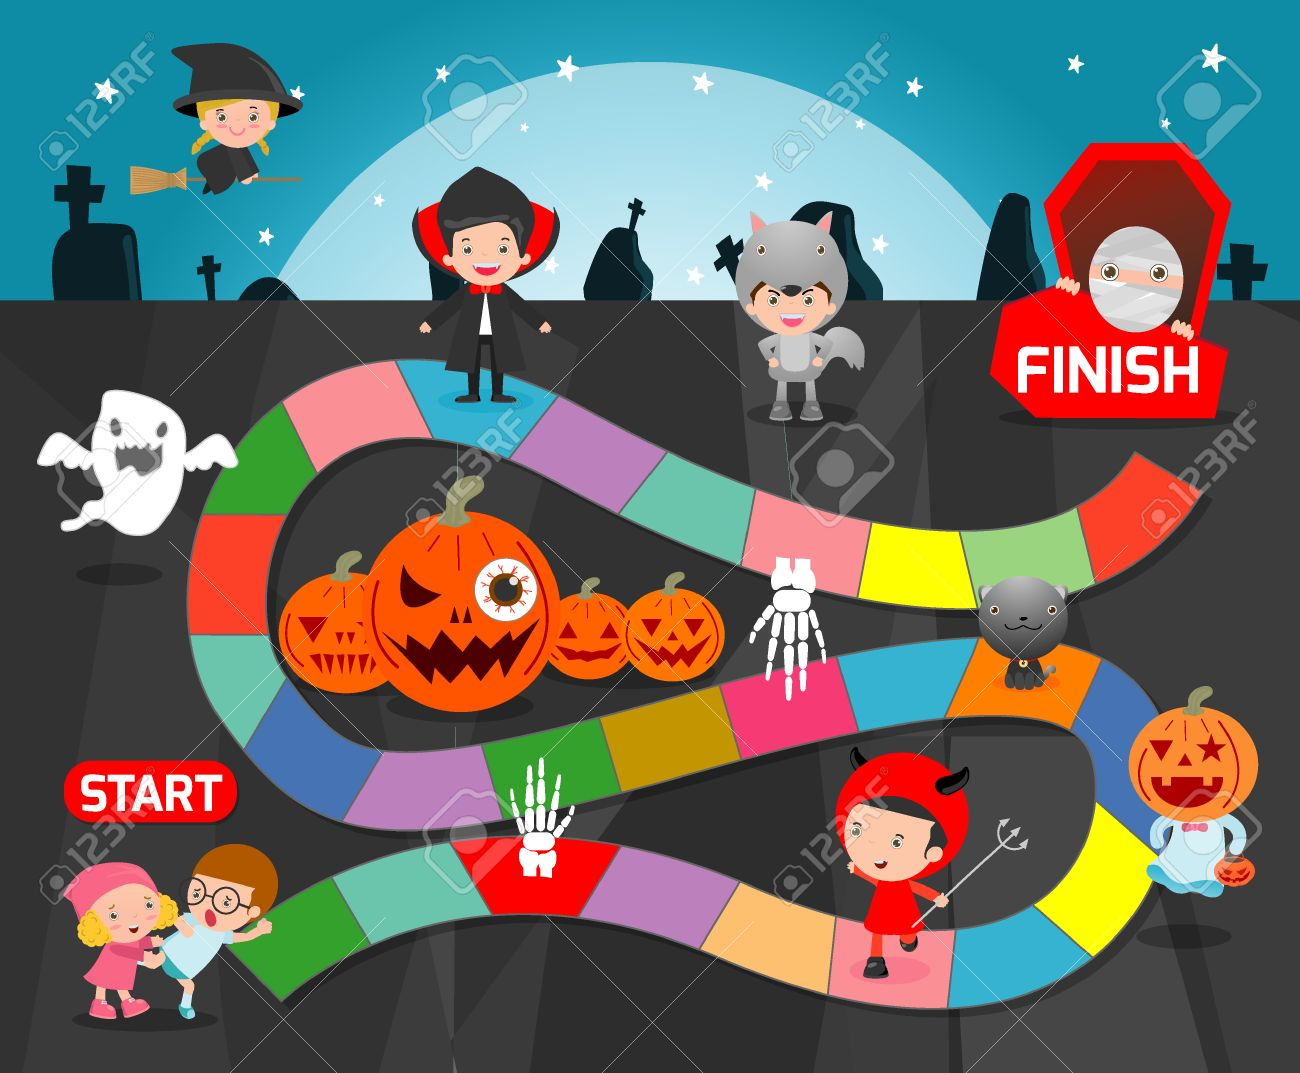 board game with Halloween,Games for kids, child board game Illustration - 63046906